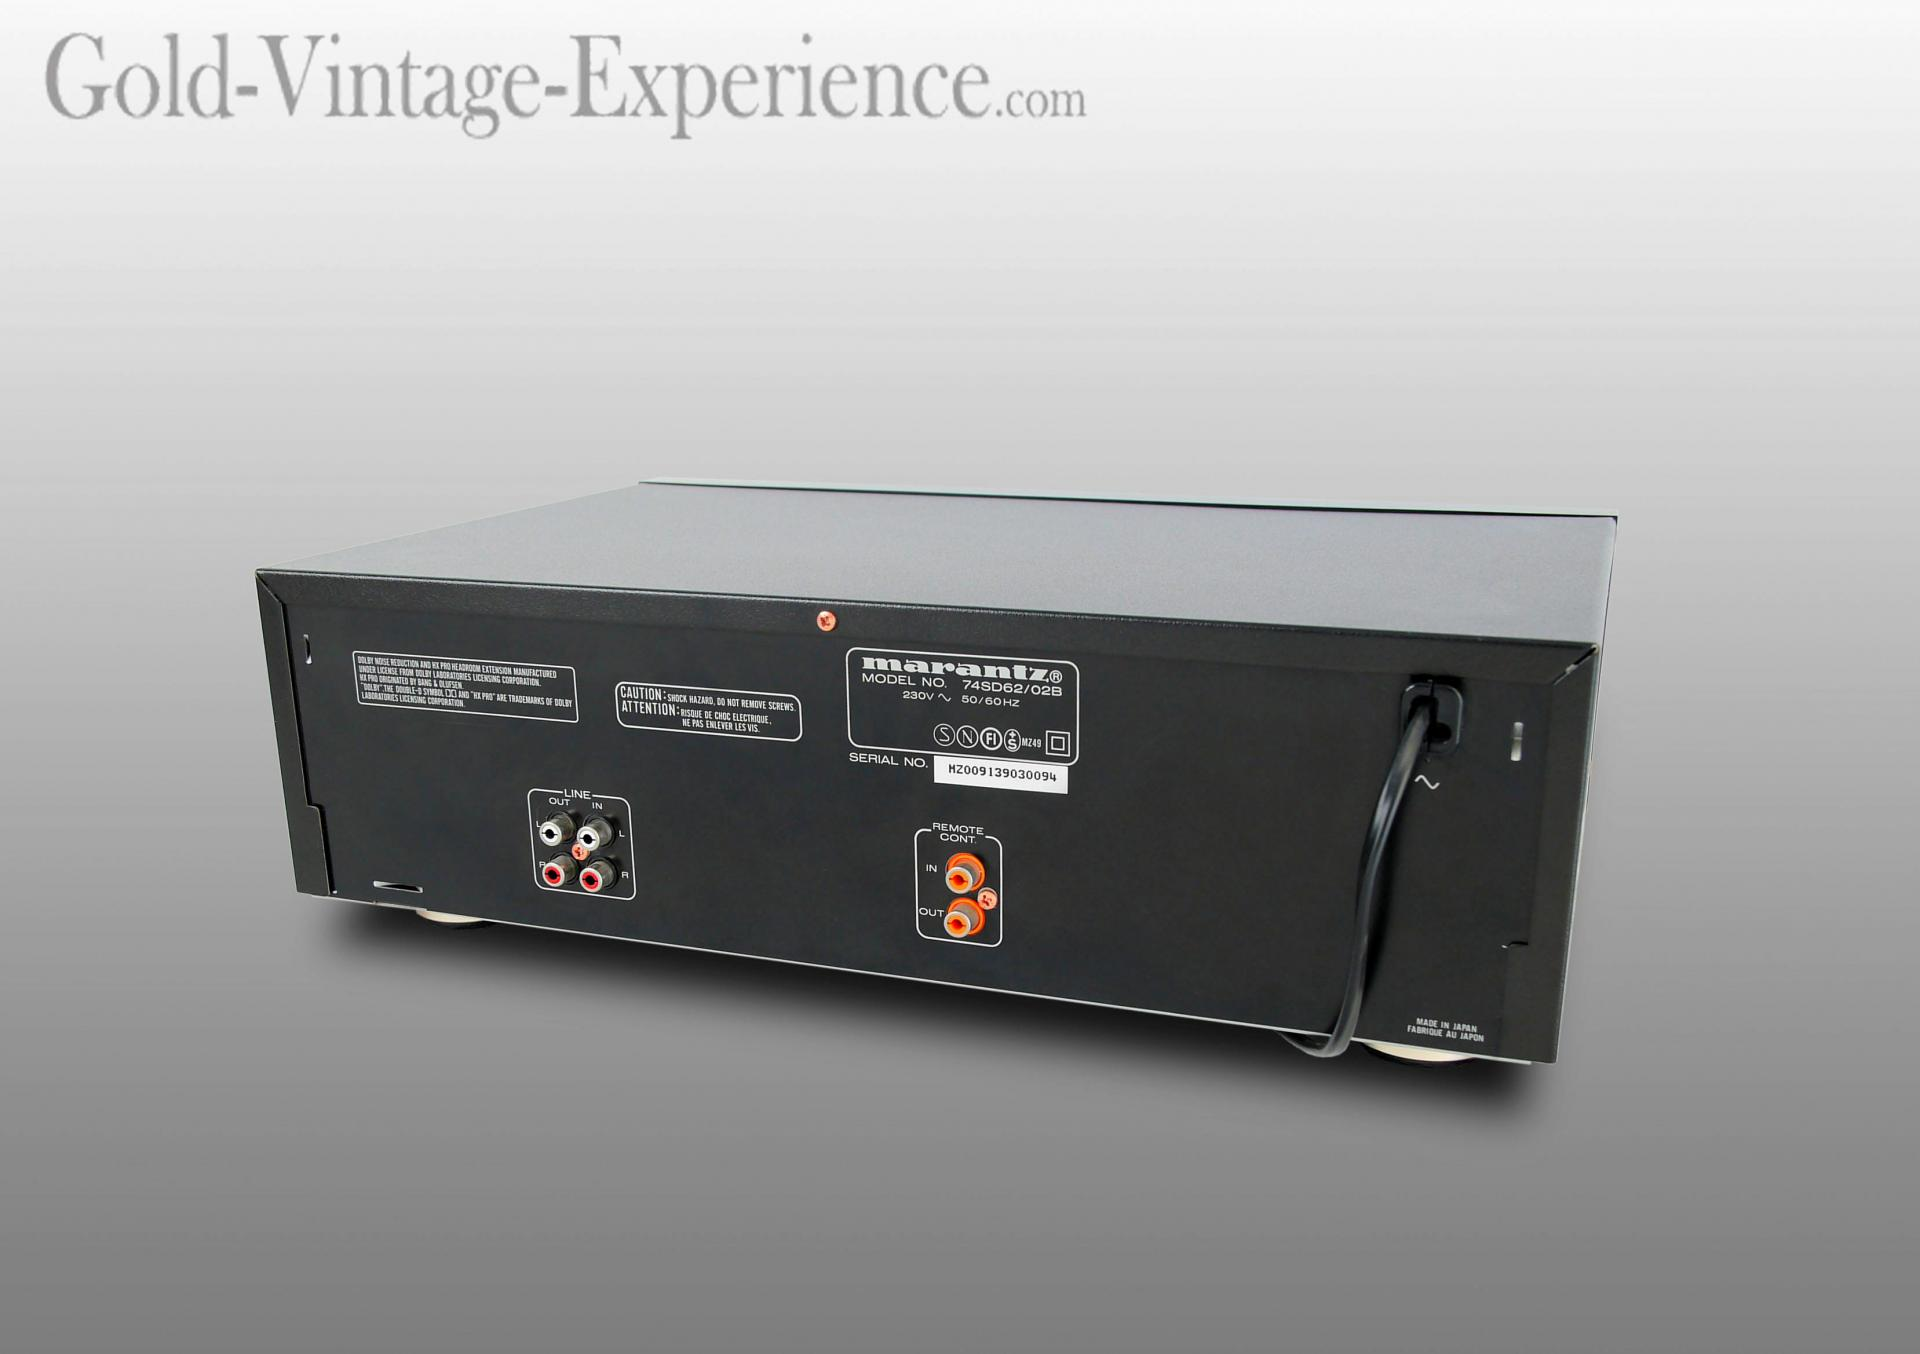 Marantz sd 62 back